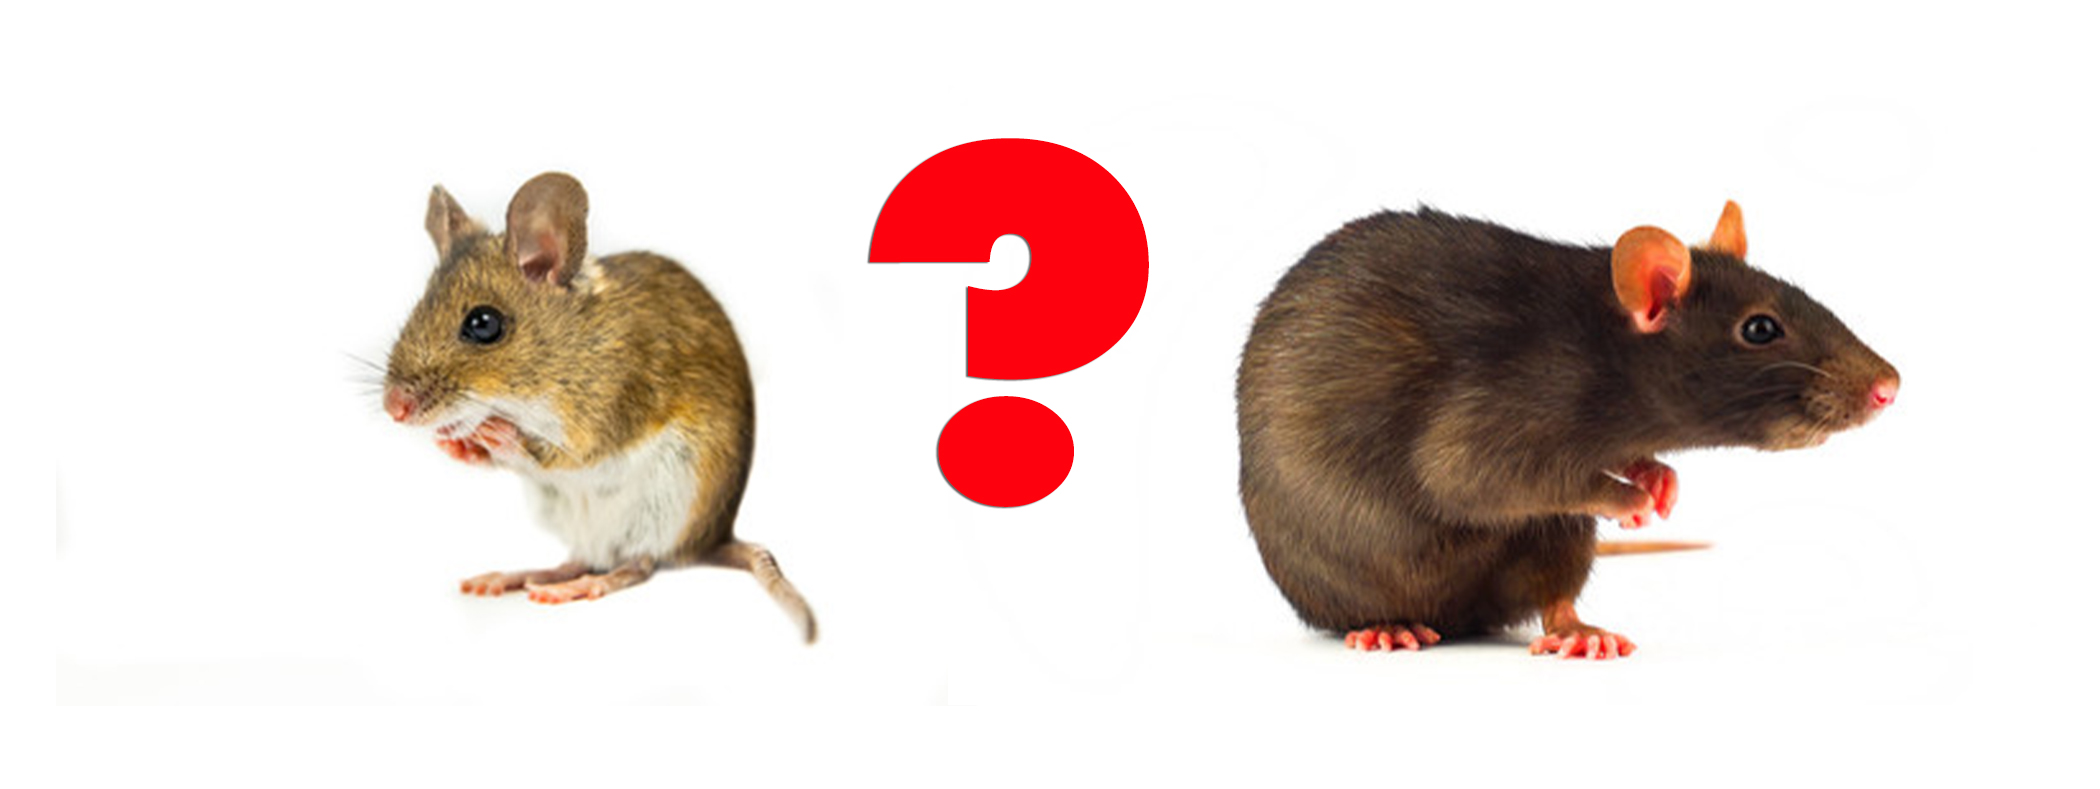 What's The Difference Between Mice and Rats